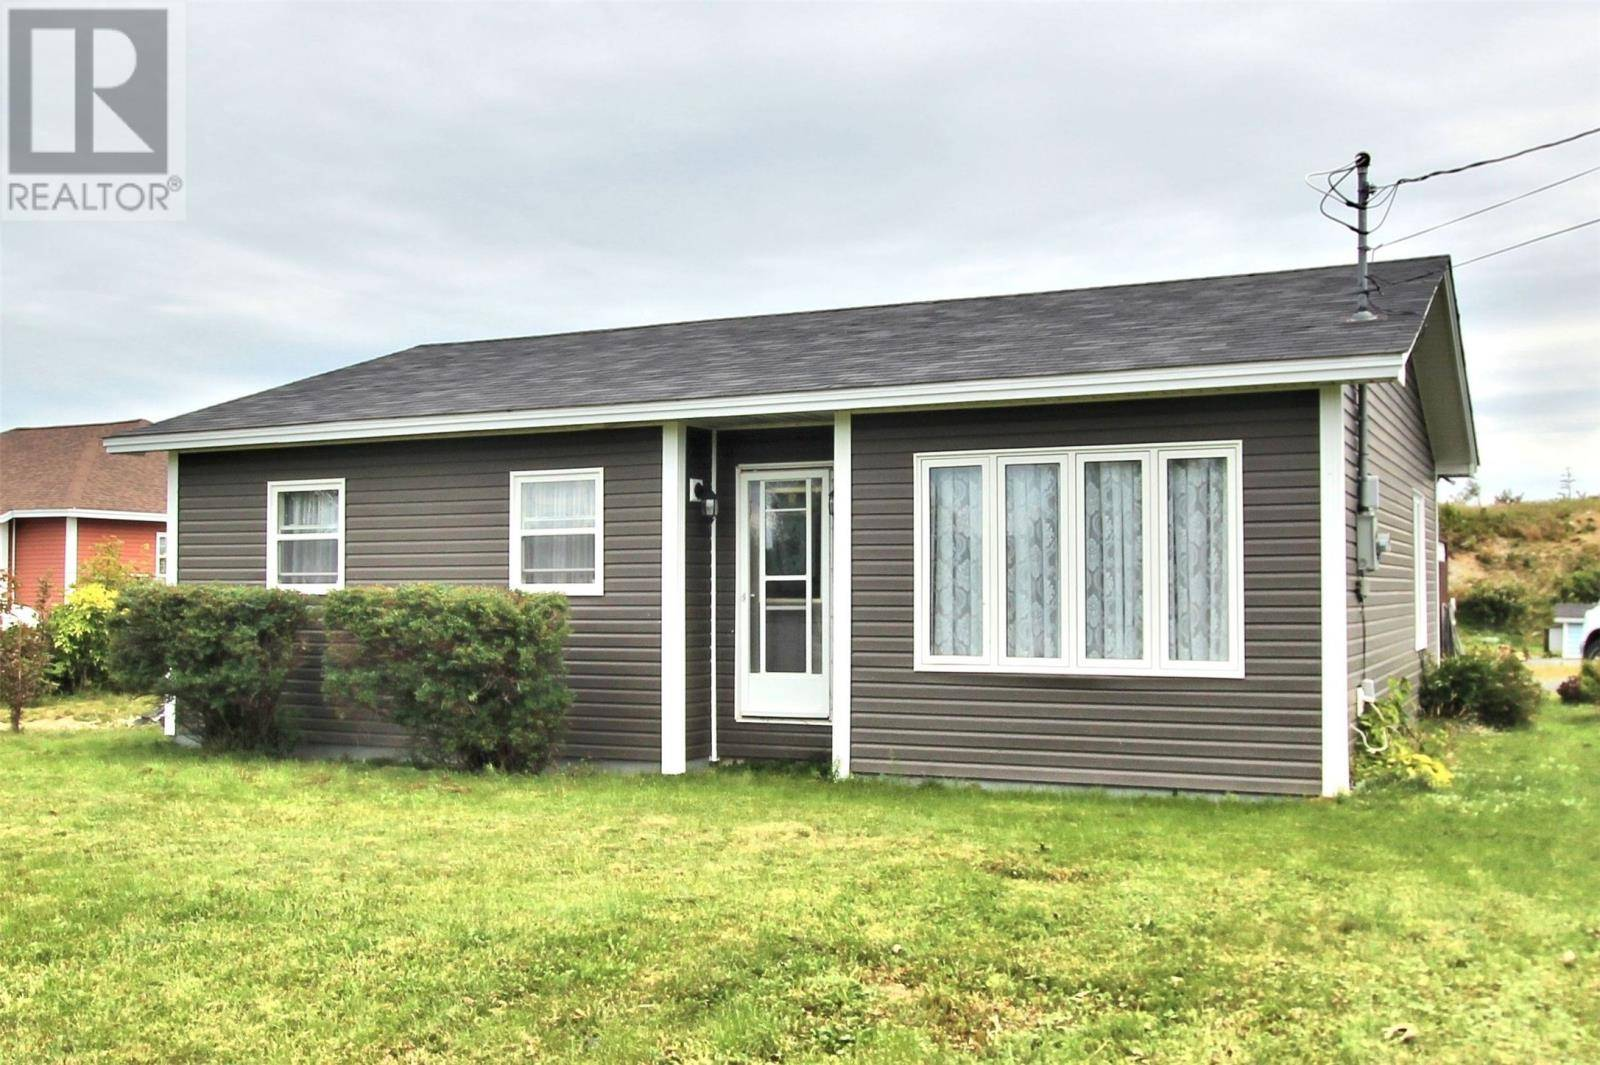 House for sale at 18 Snowy Rd Bryants Cove Newfoundland - MLS: 1202944